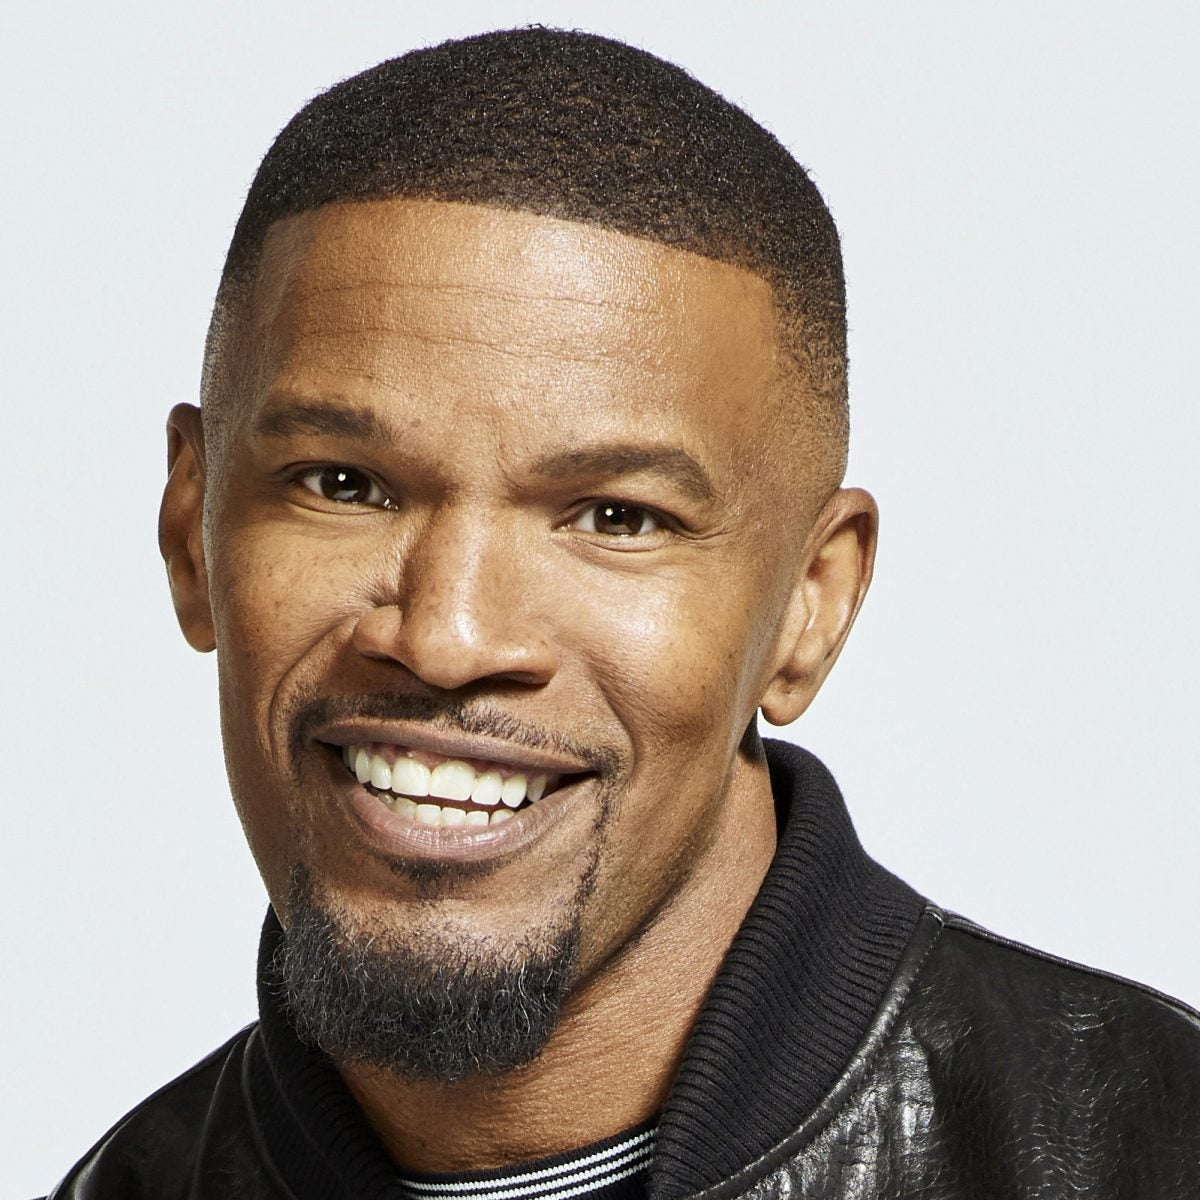 Jamie Foxx On Being An Oscar-Winning Actor And Game Show Host: 'I'm Happy'